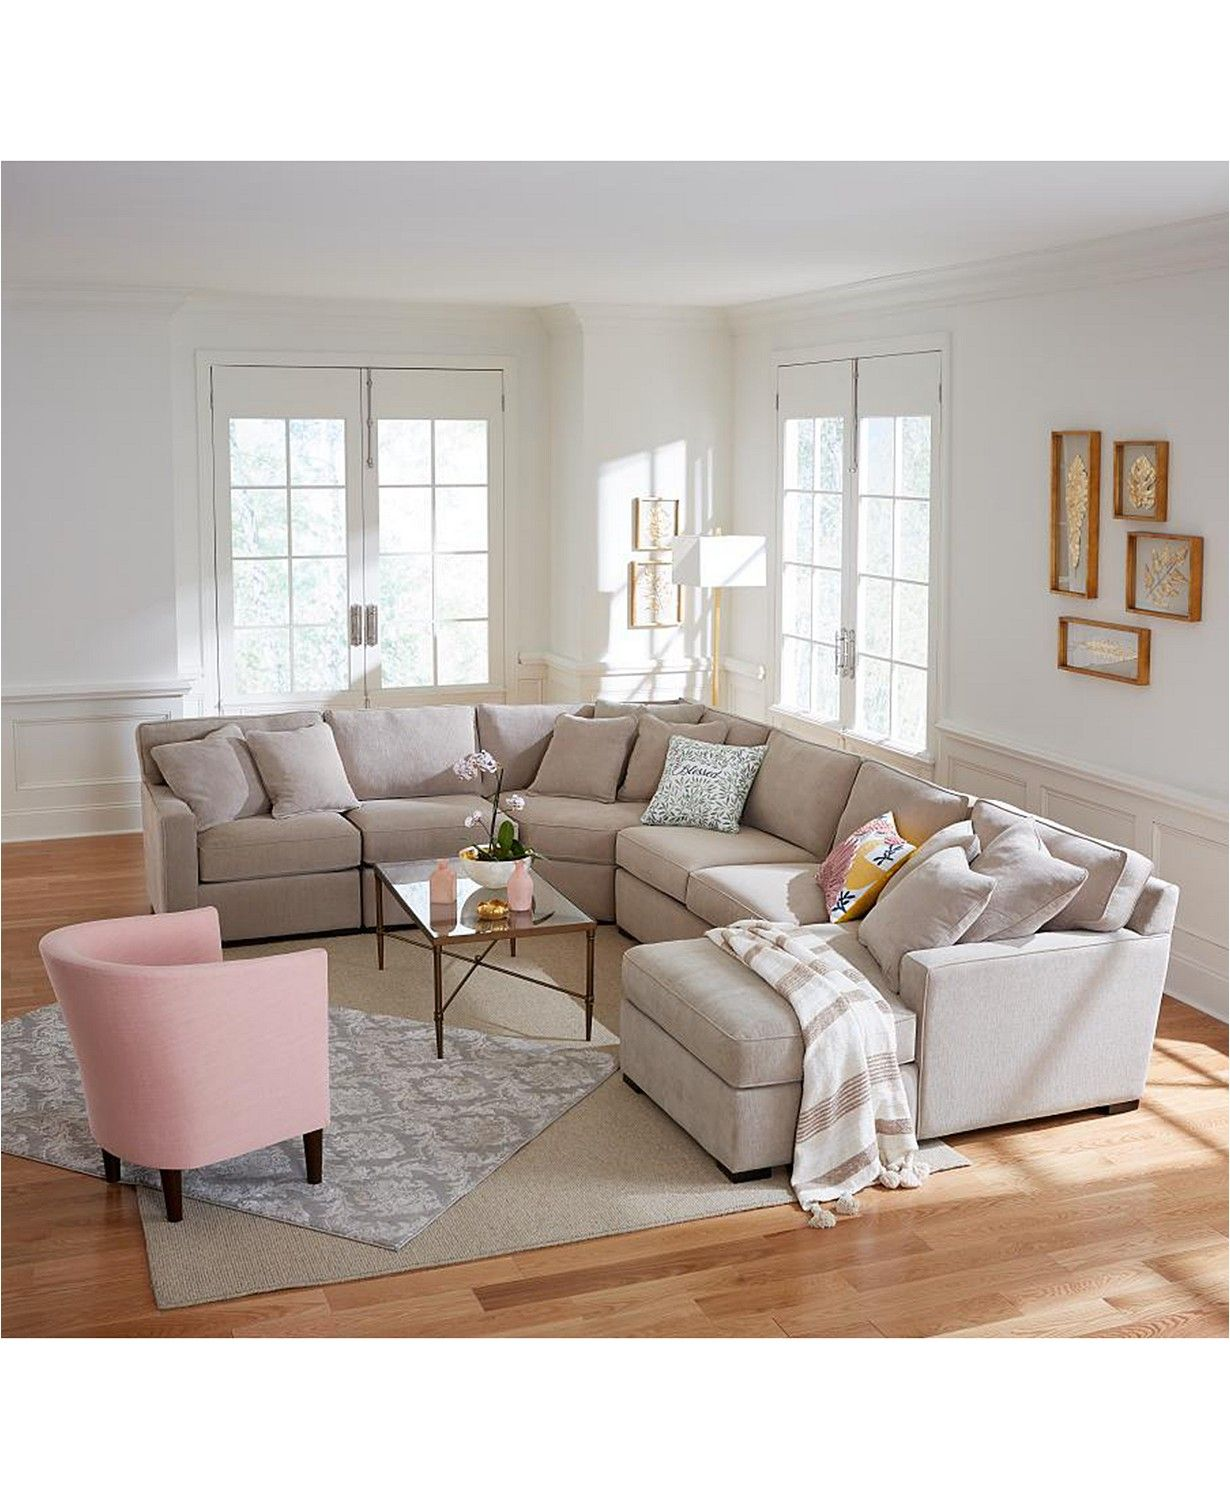 Furniture Radley 5-Piece Fabric Sectional Sofa with Apartment Sofa, Created for Macy's & Reviews - Furniture - Macy's